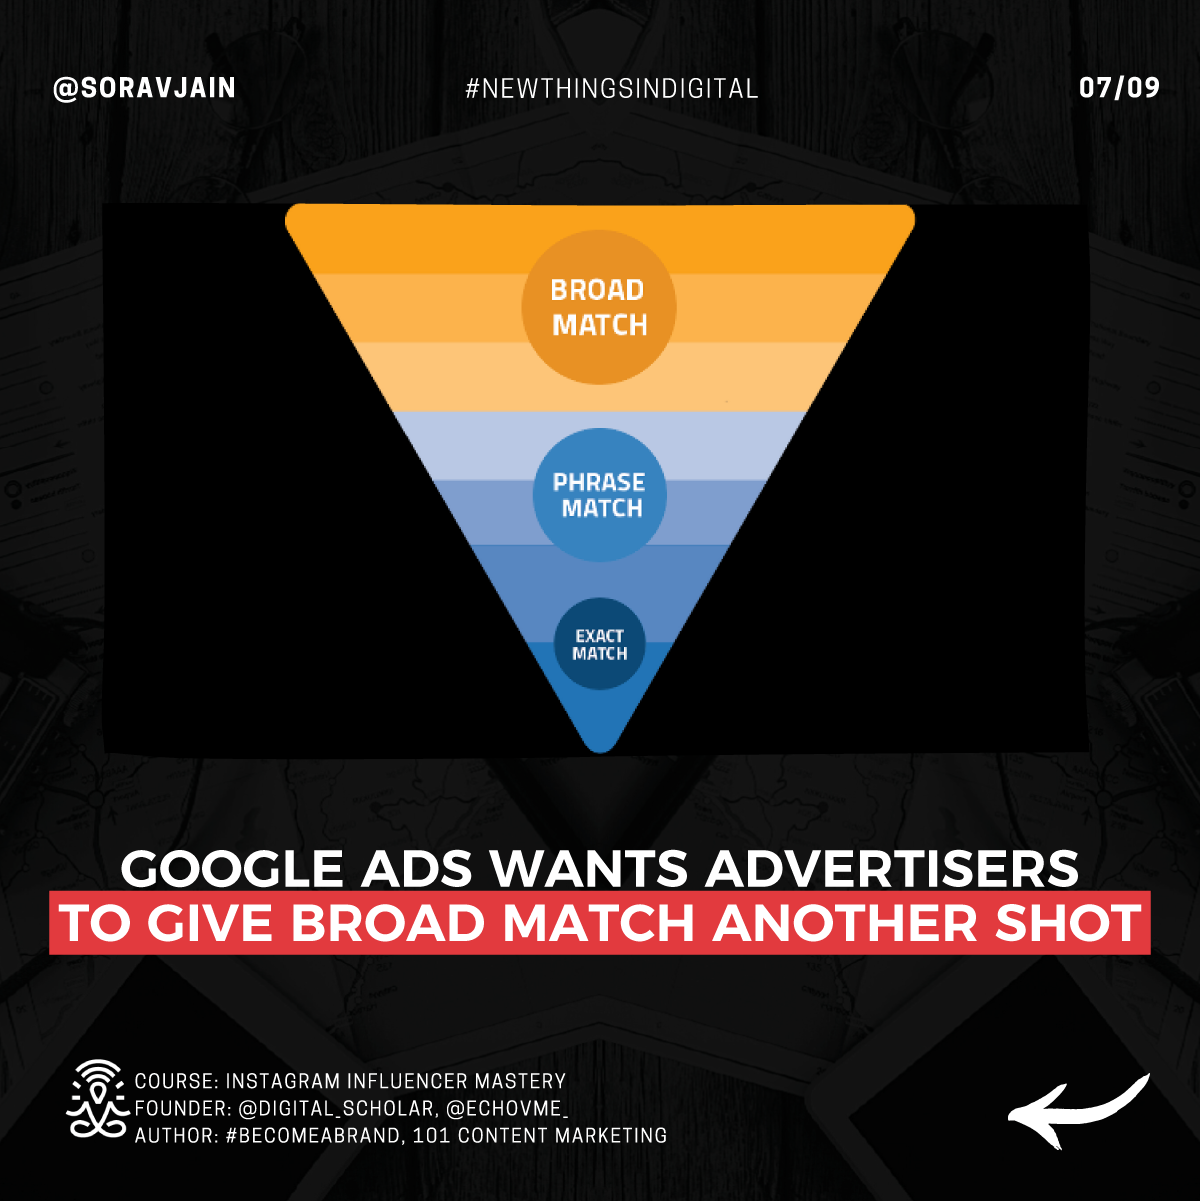 Google Ads wants advertisers to give broad match another shot